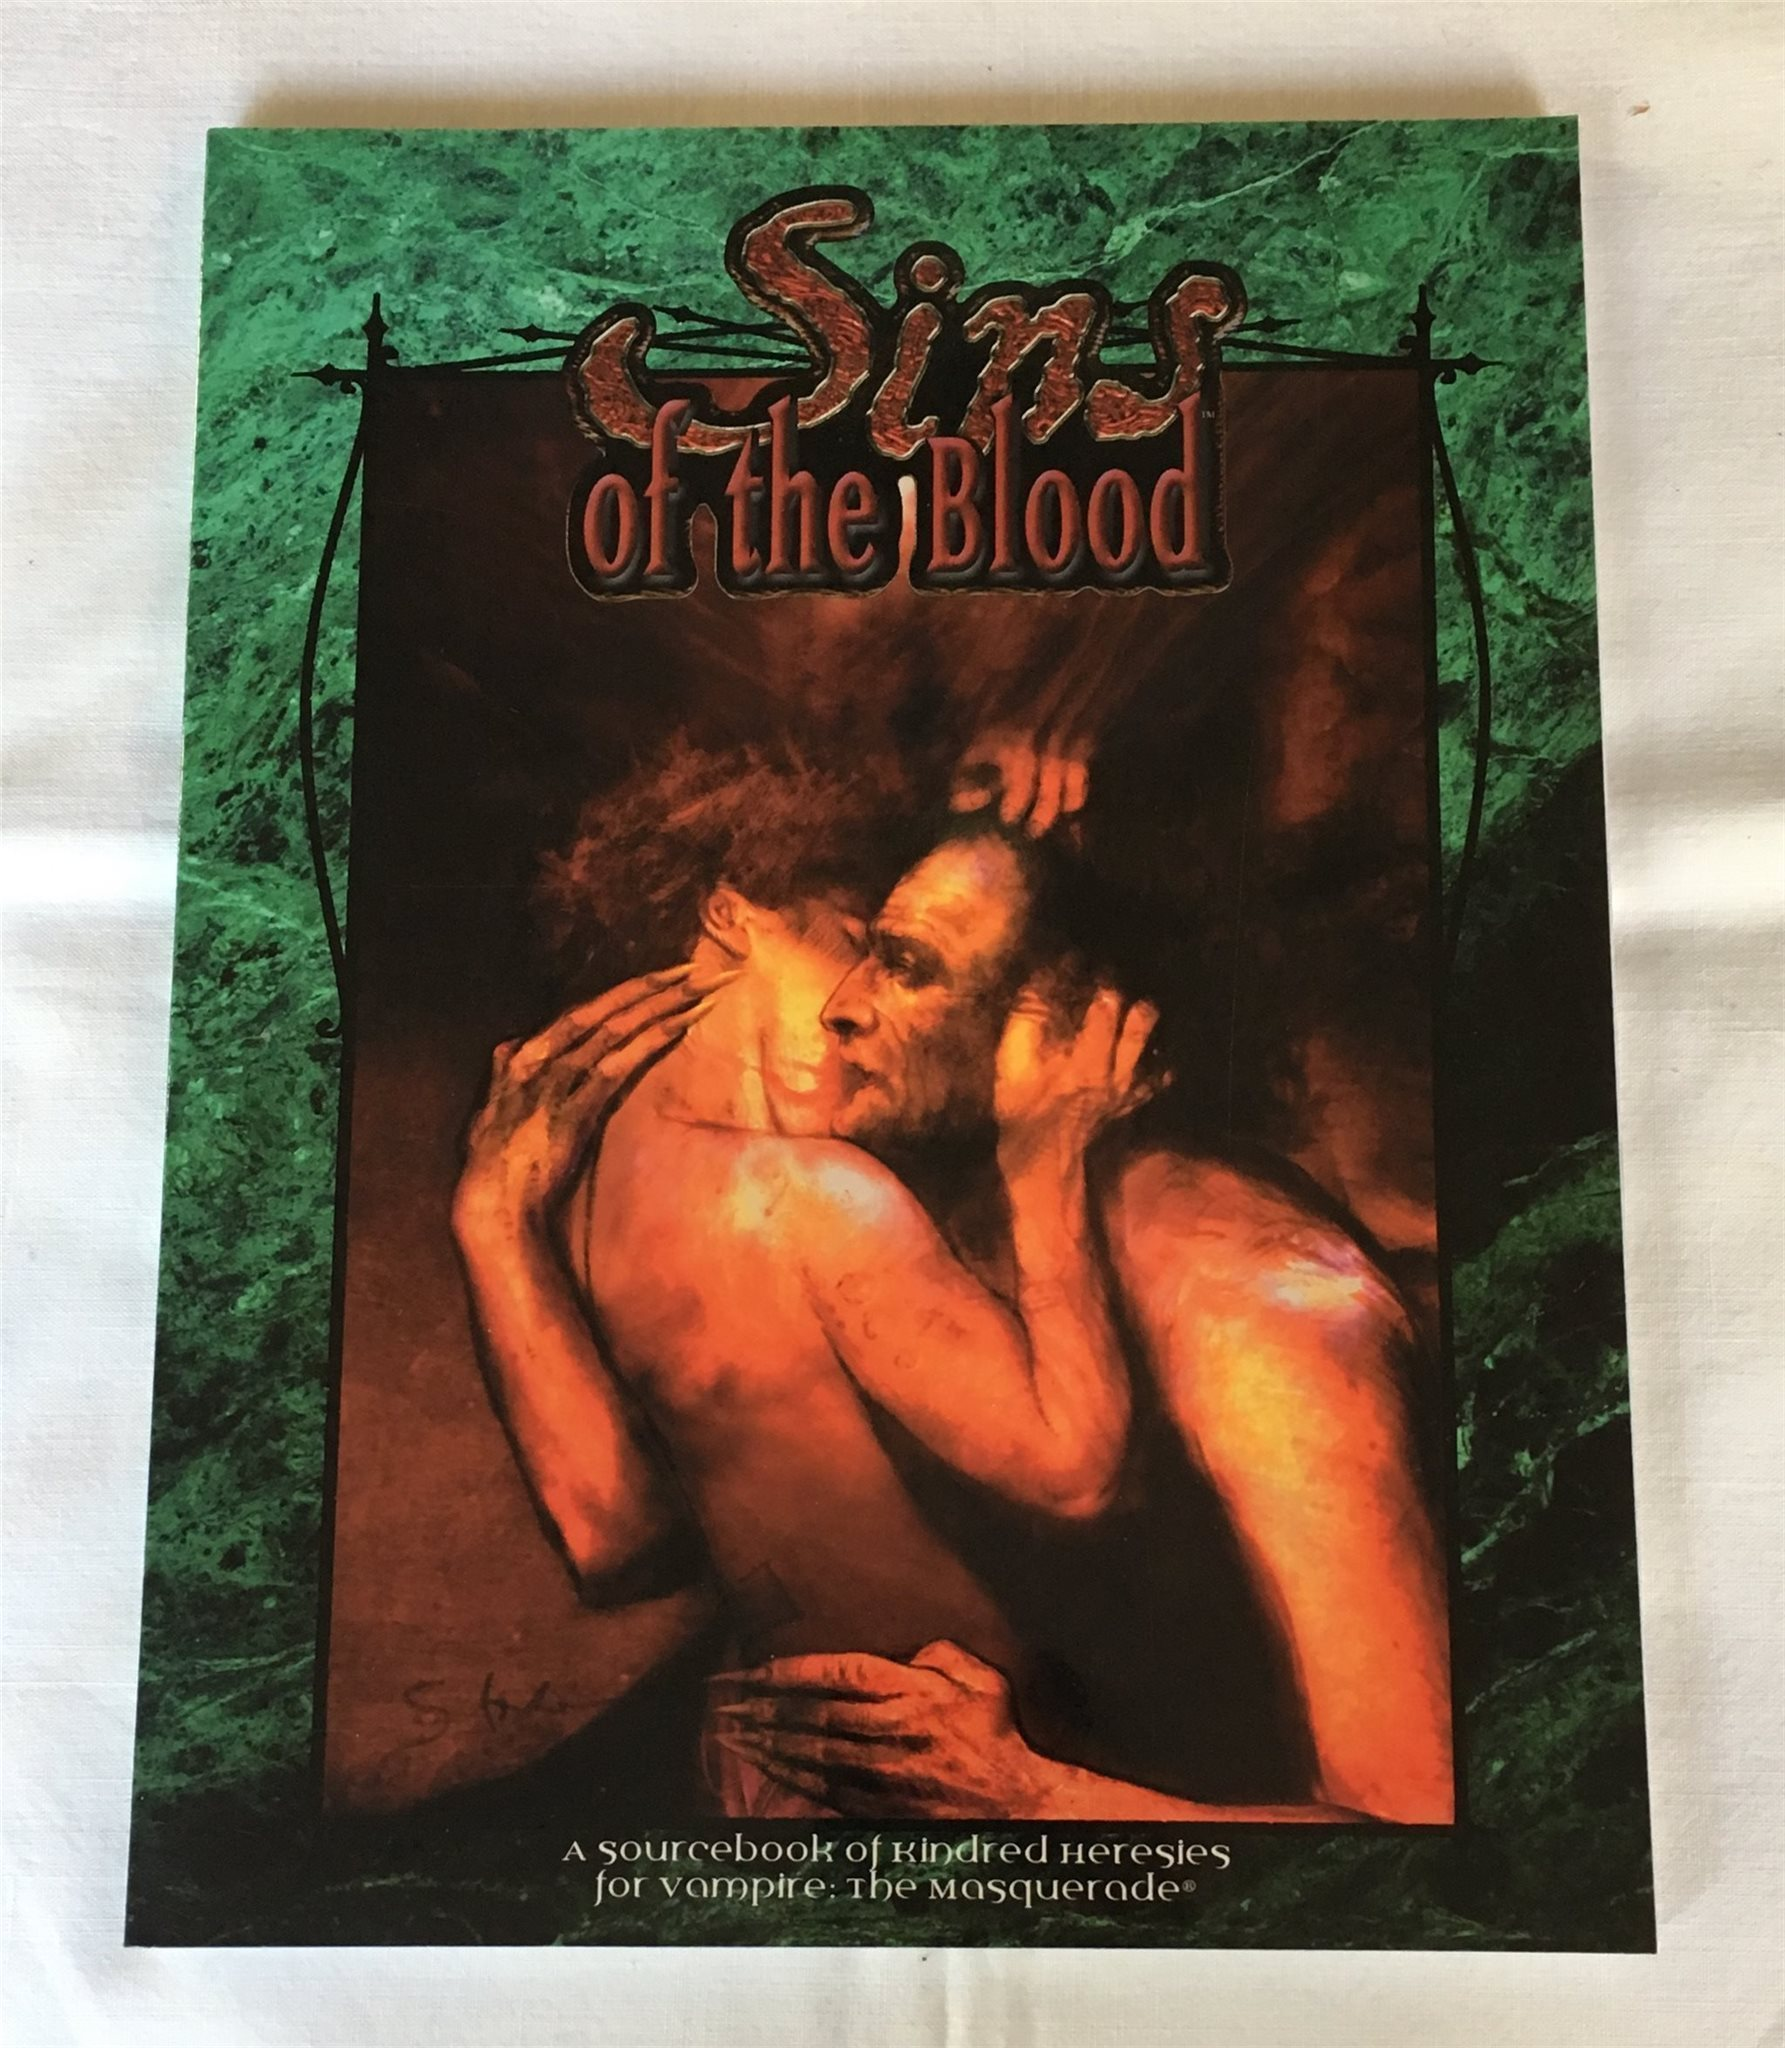 Sins of the blood - Vampire - The Masqurade